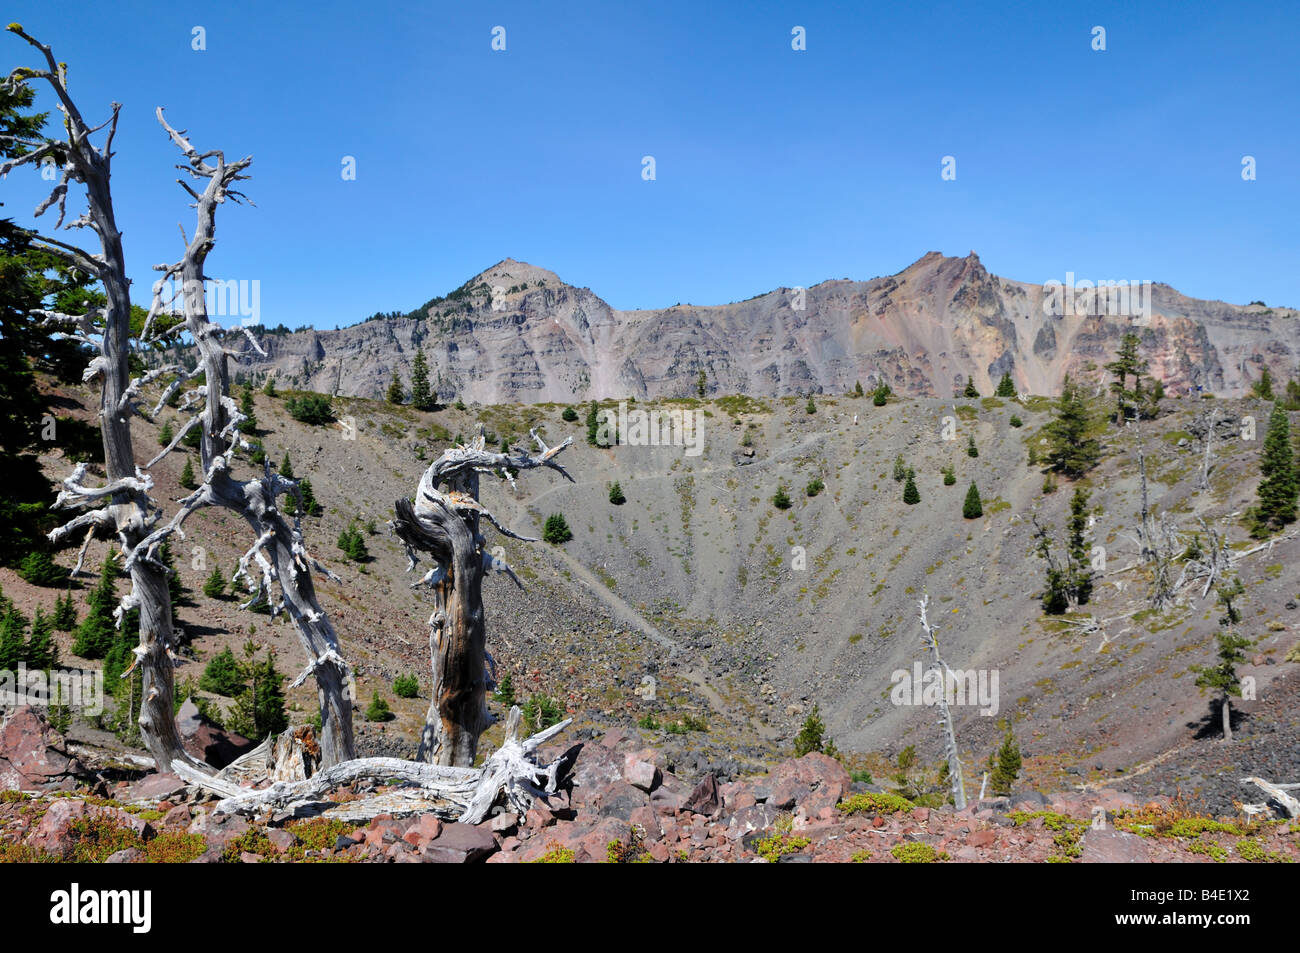 The Witch's Cauldron, a small crater on top of the Wizard Island. The Crater Lake National Park, Oregon, USA. Stock Photo